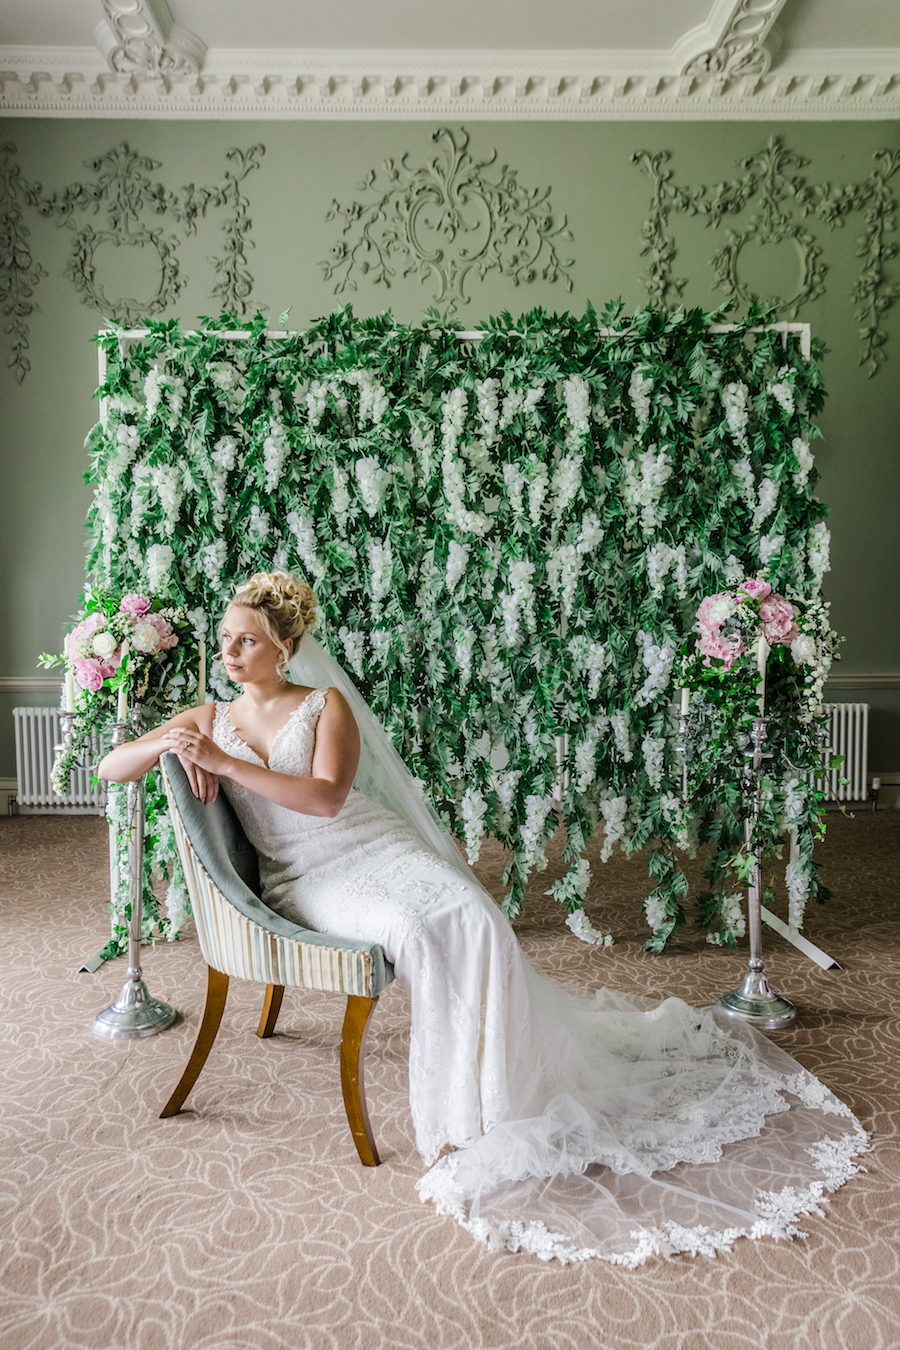 Wedding editorial from Wivenhoe House, image credit Ayshea Goldberg Photography (12)